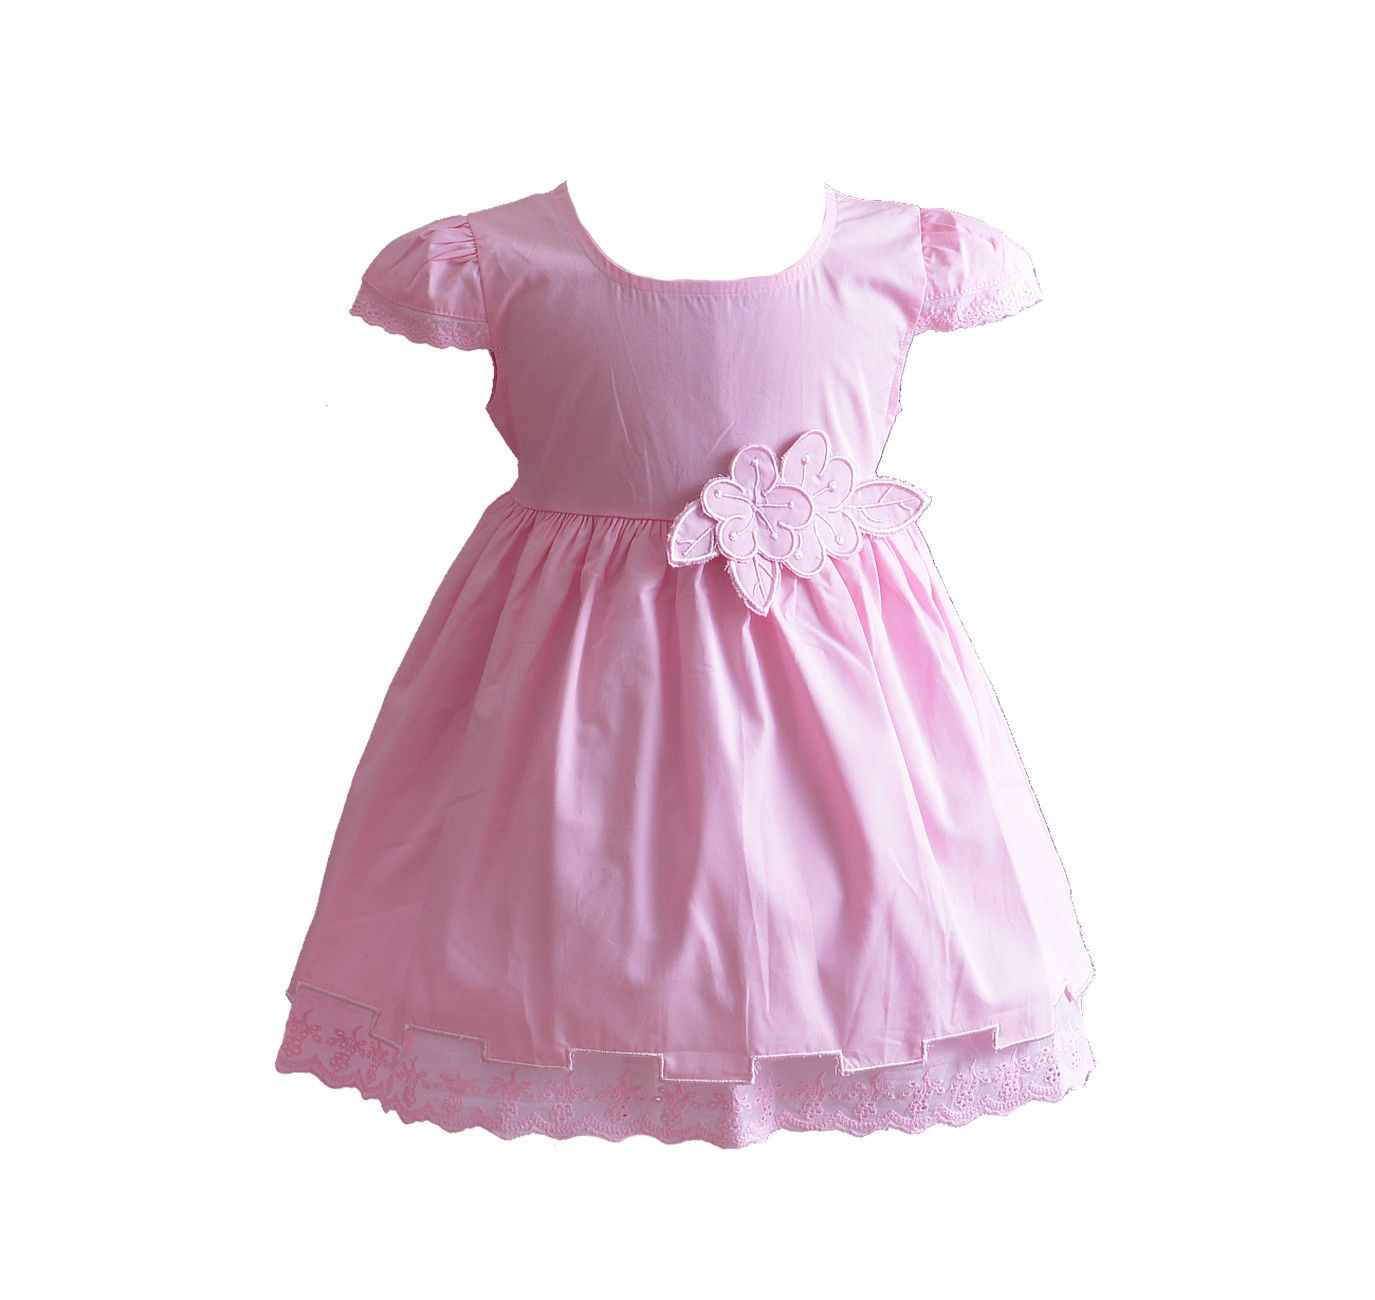 888bd9c35739d Baby Girls Floral Cotton Dress Pink White Yellow Blue 6 9 12 18 24 Months